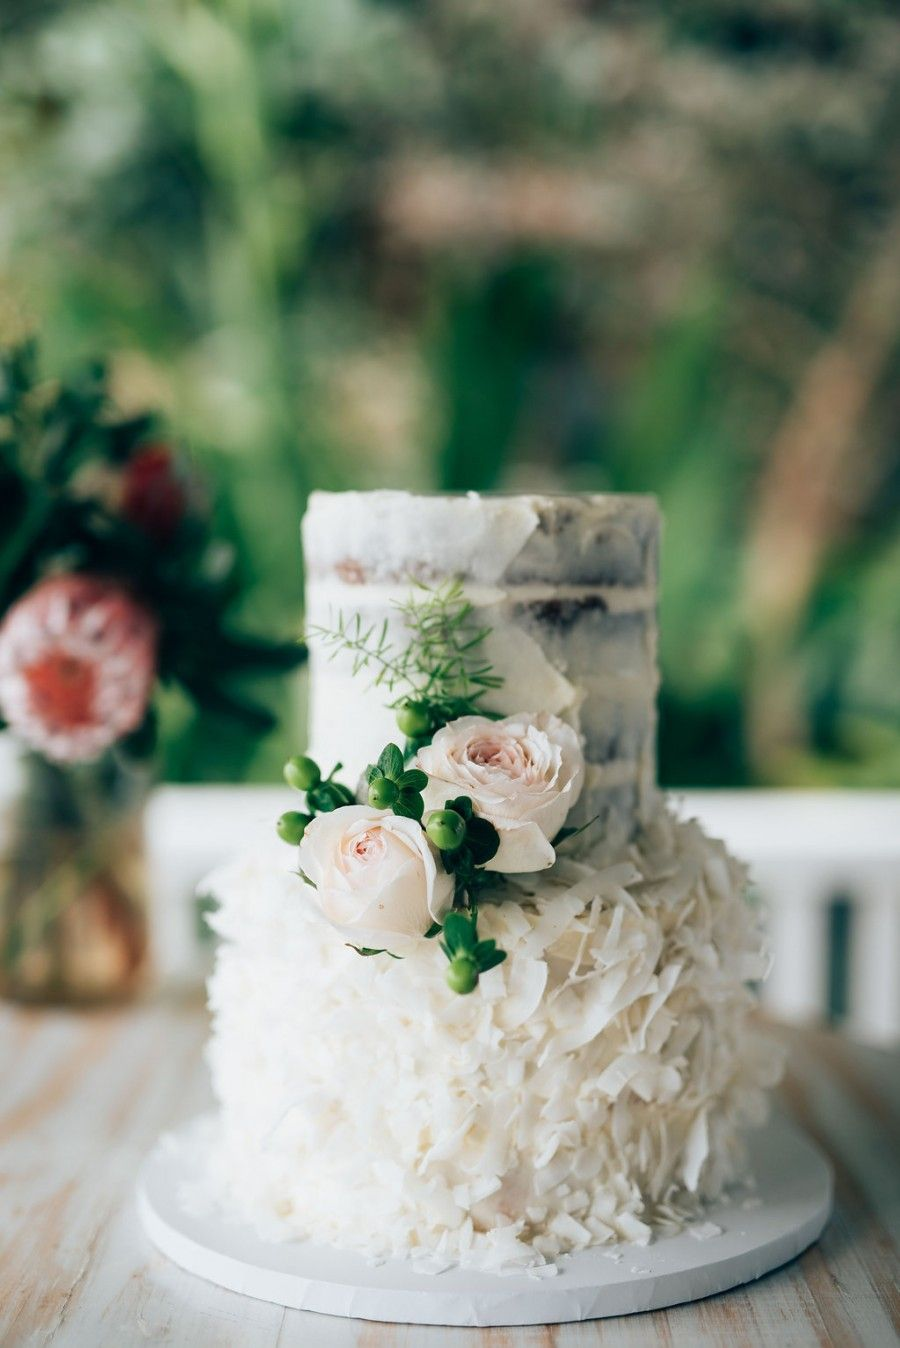 Leah   Jim s Byron View Farm Wedding   Florals Nadine Continued     coconut wedding cake  1st tier coconut   lime mud with white chocolate  ganache   2nd tier sticky date mud with salted caramel ganache